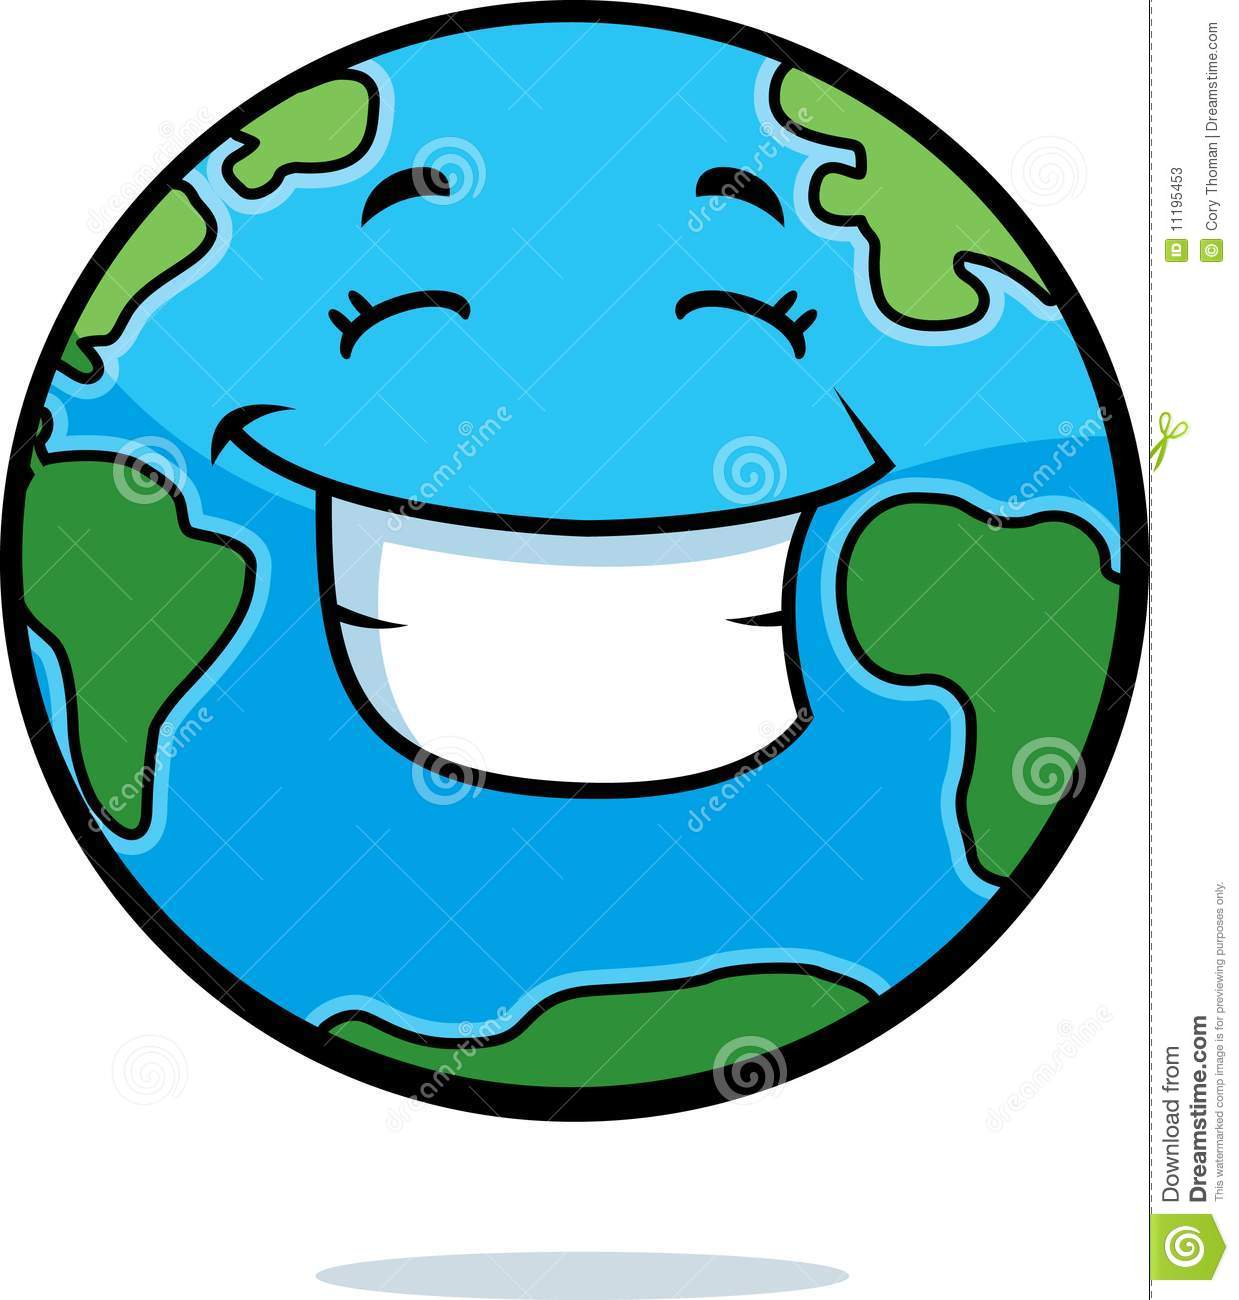 Earth Smiling Stock Photos   Image  11195453